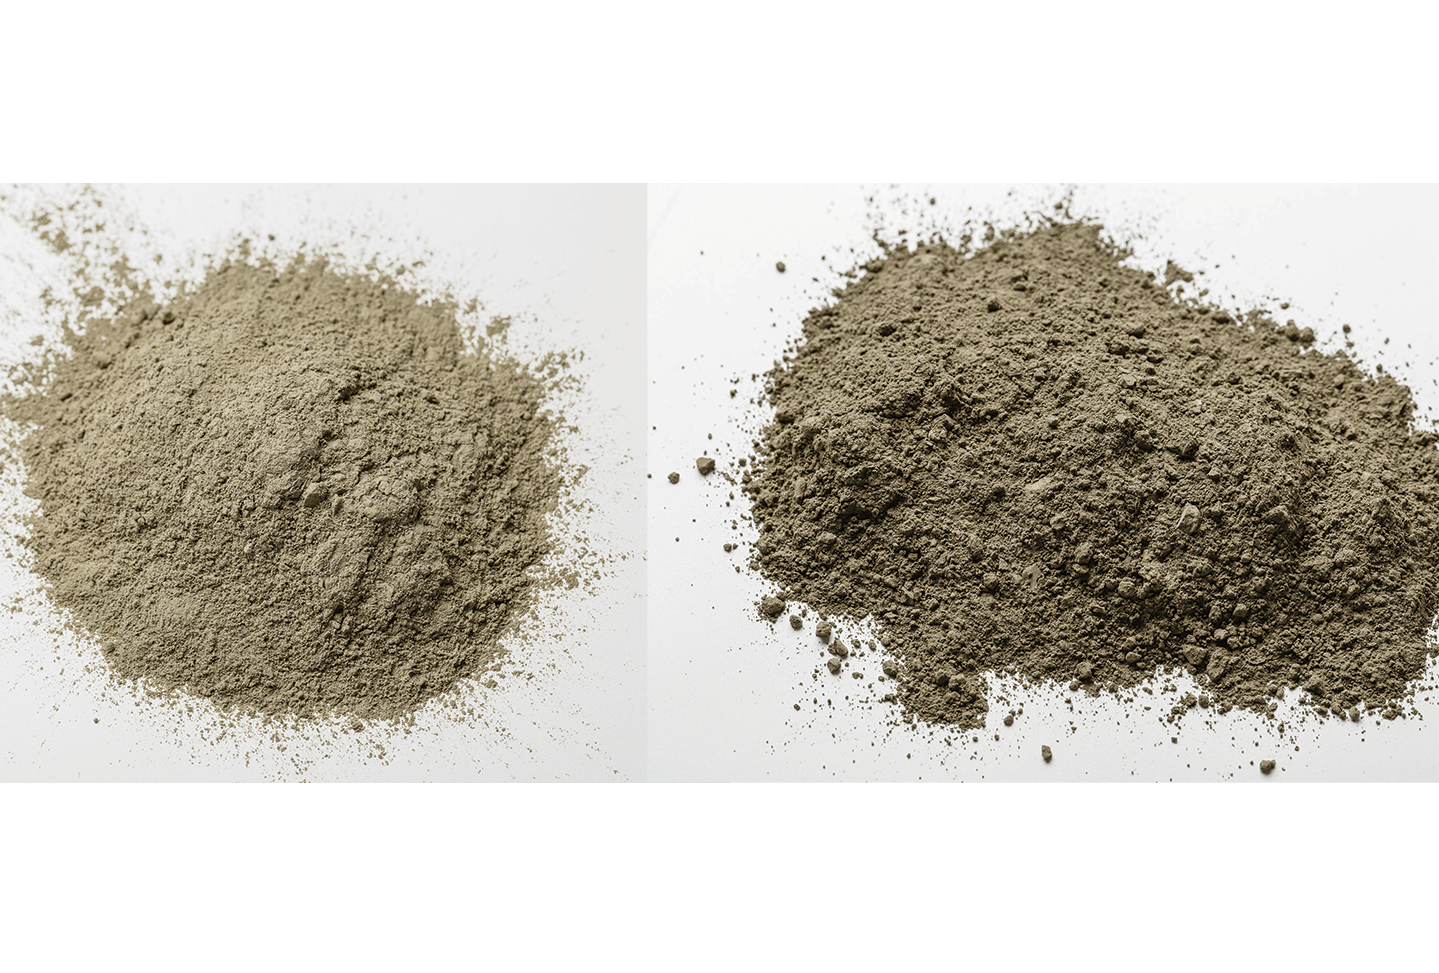 Cement and Bentonite p[powder in Grout Mix